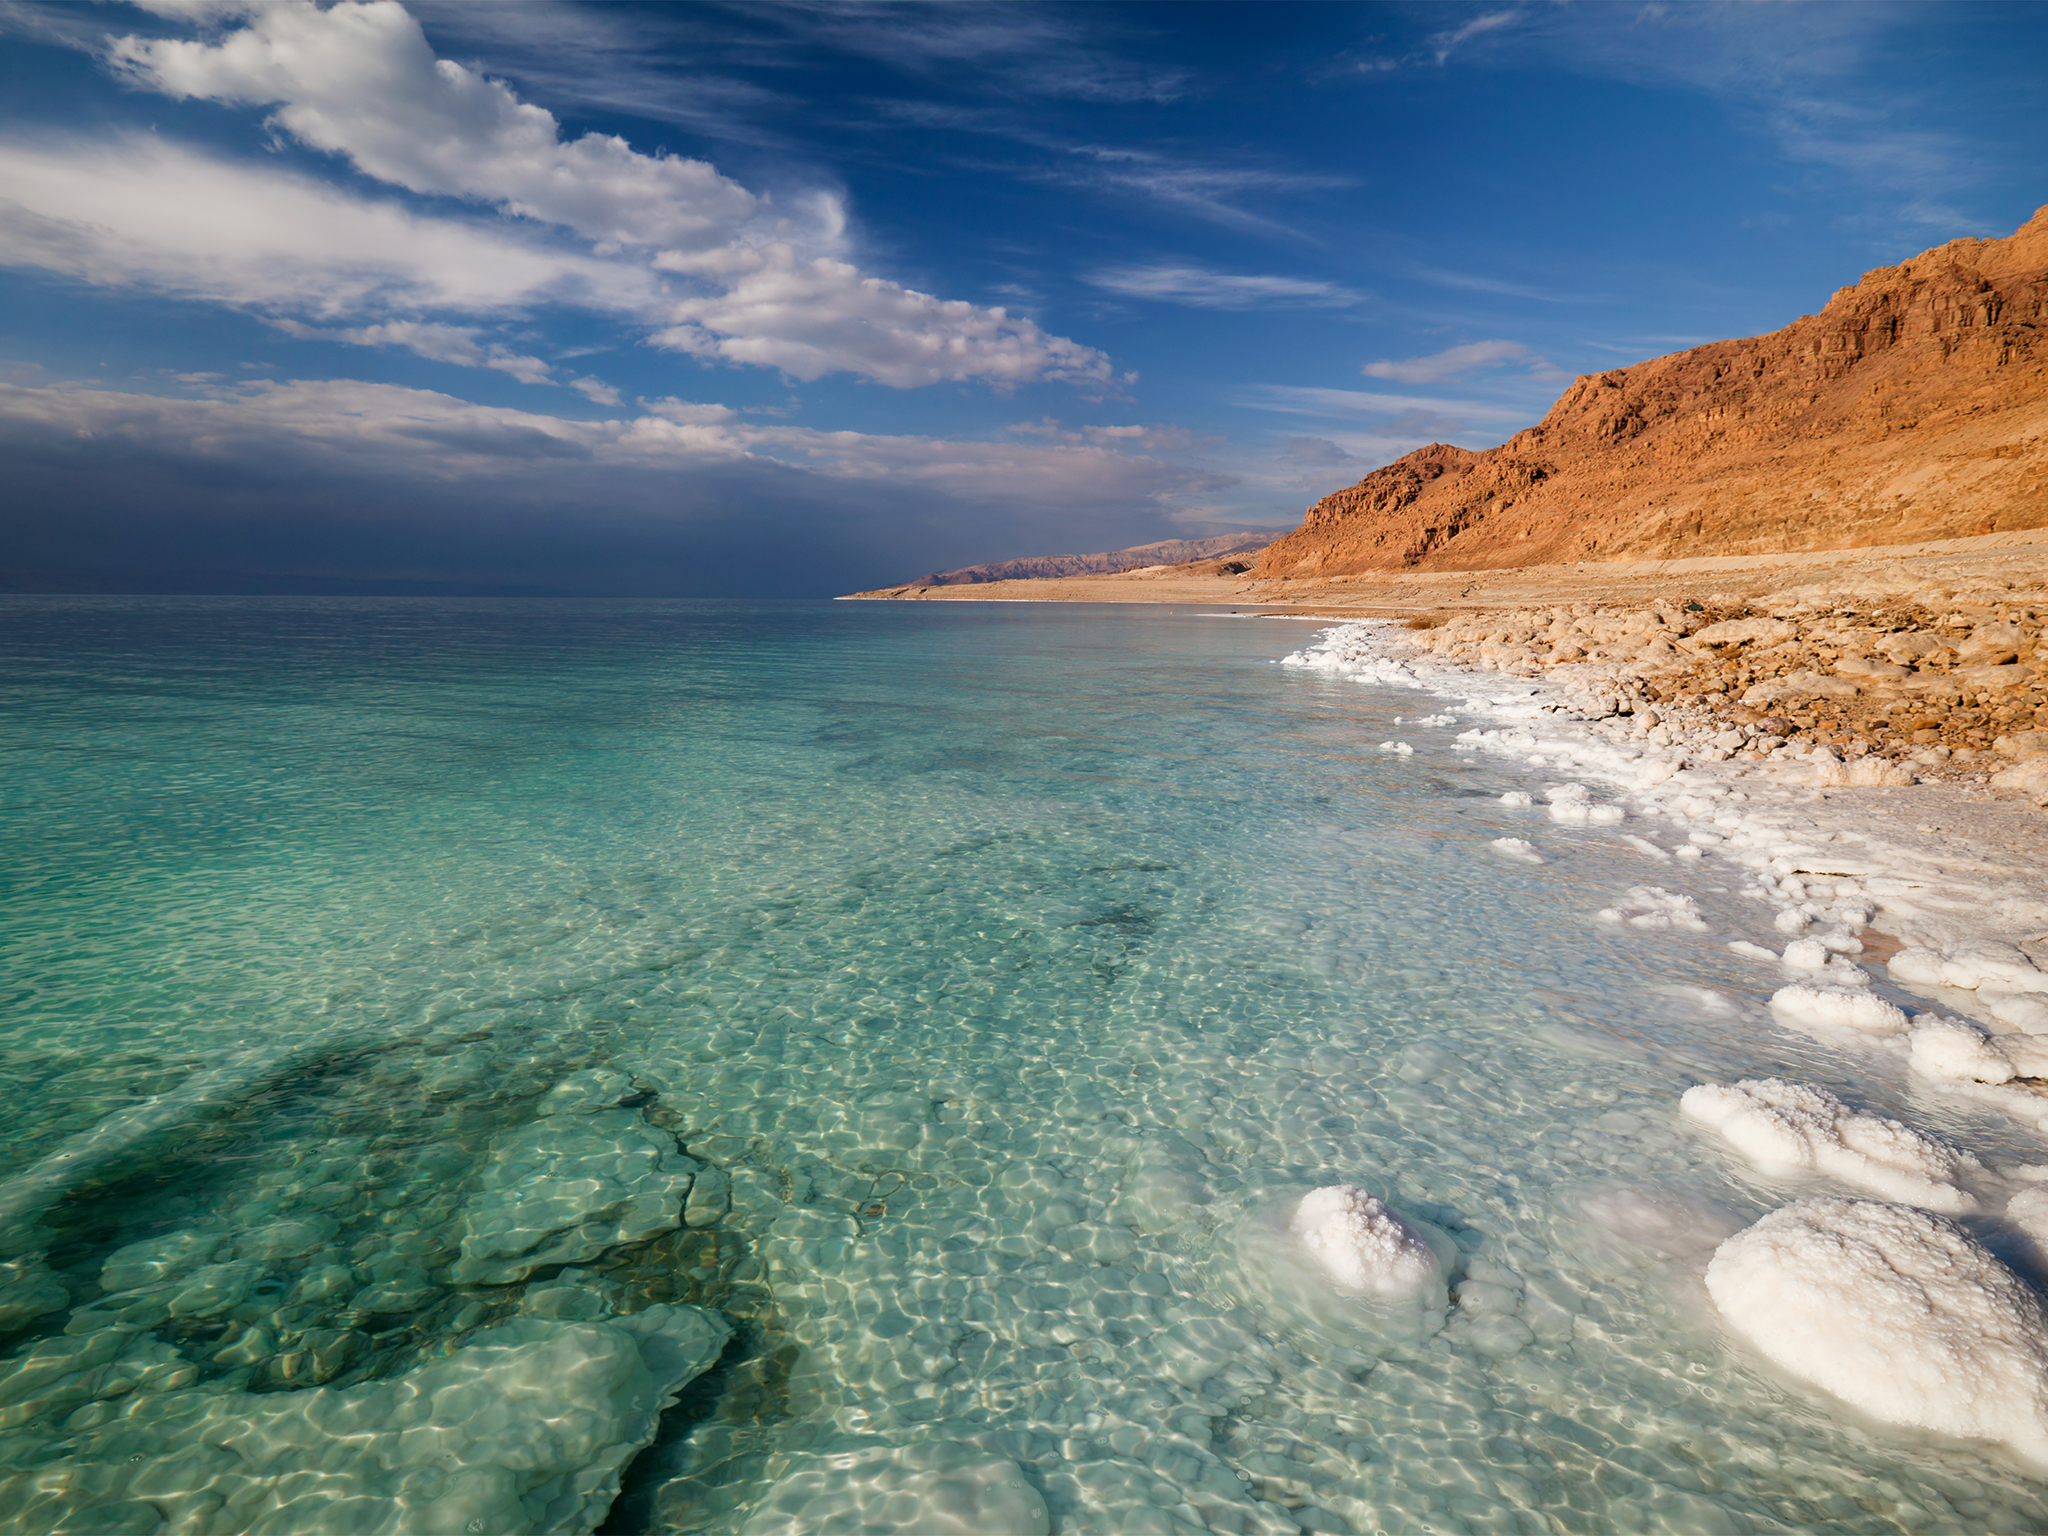 The Dead Sea's top attractions